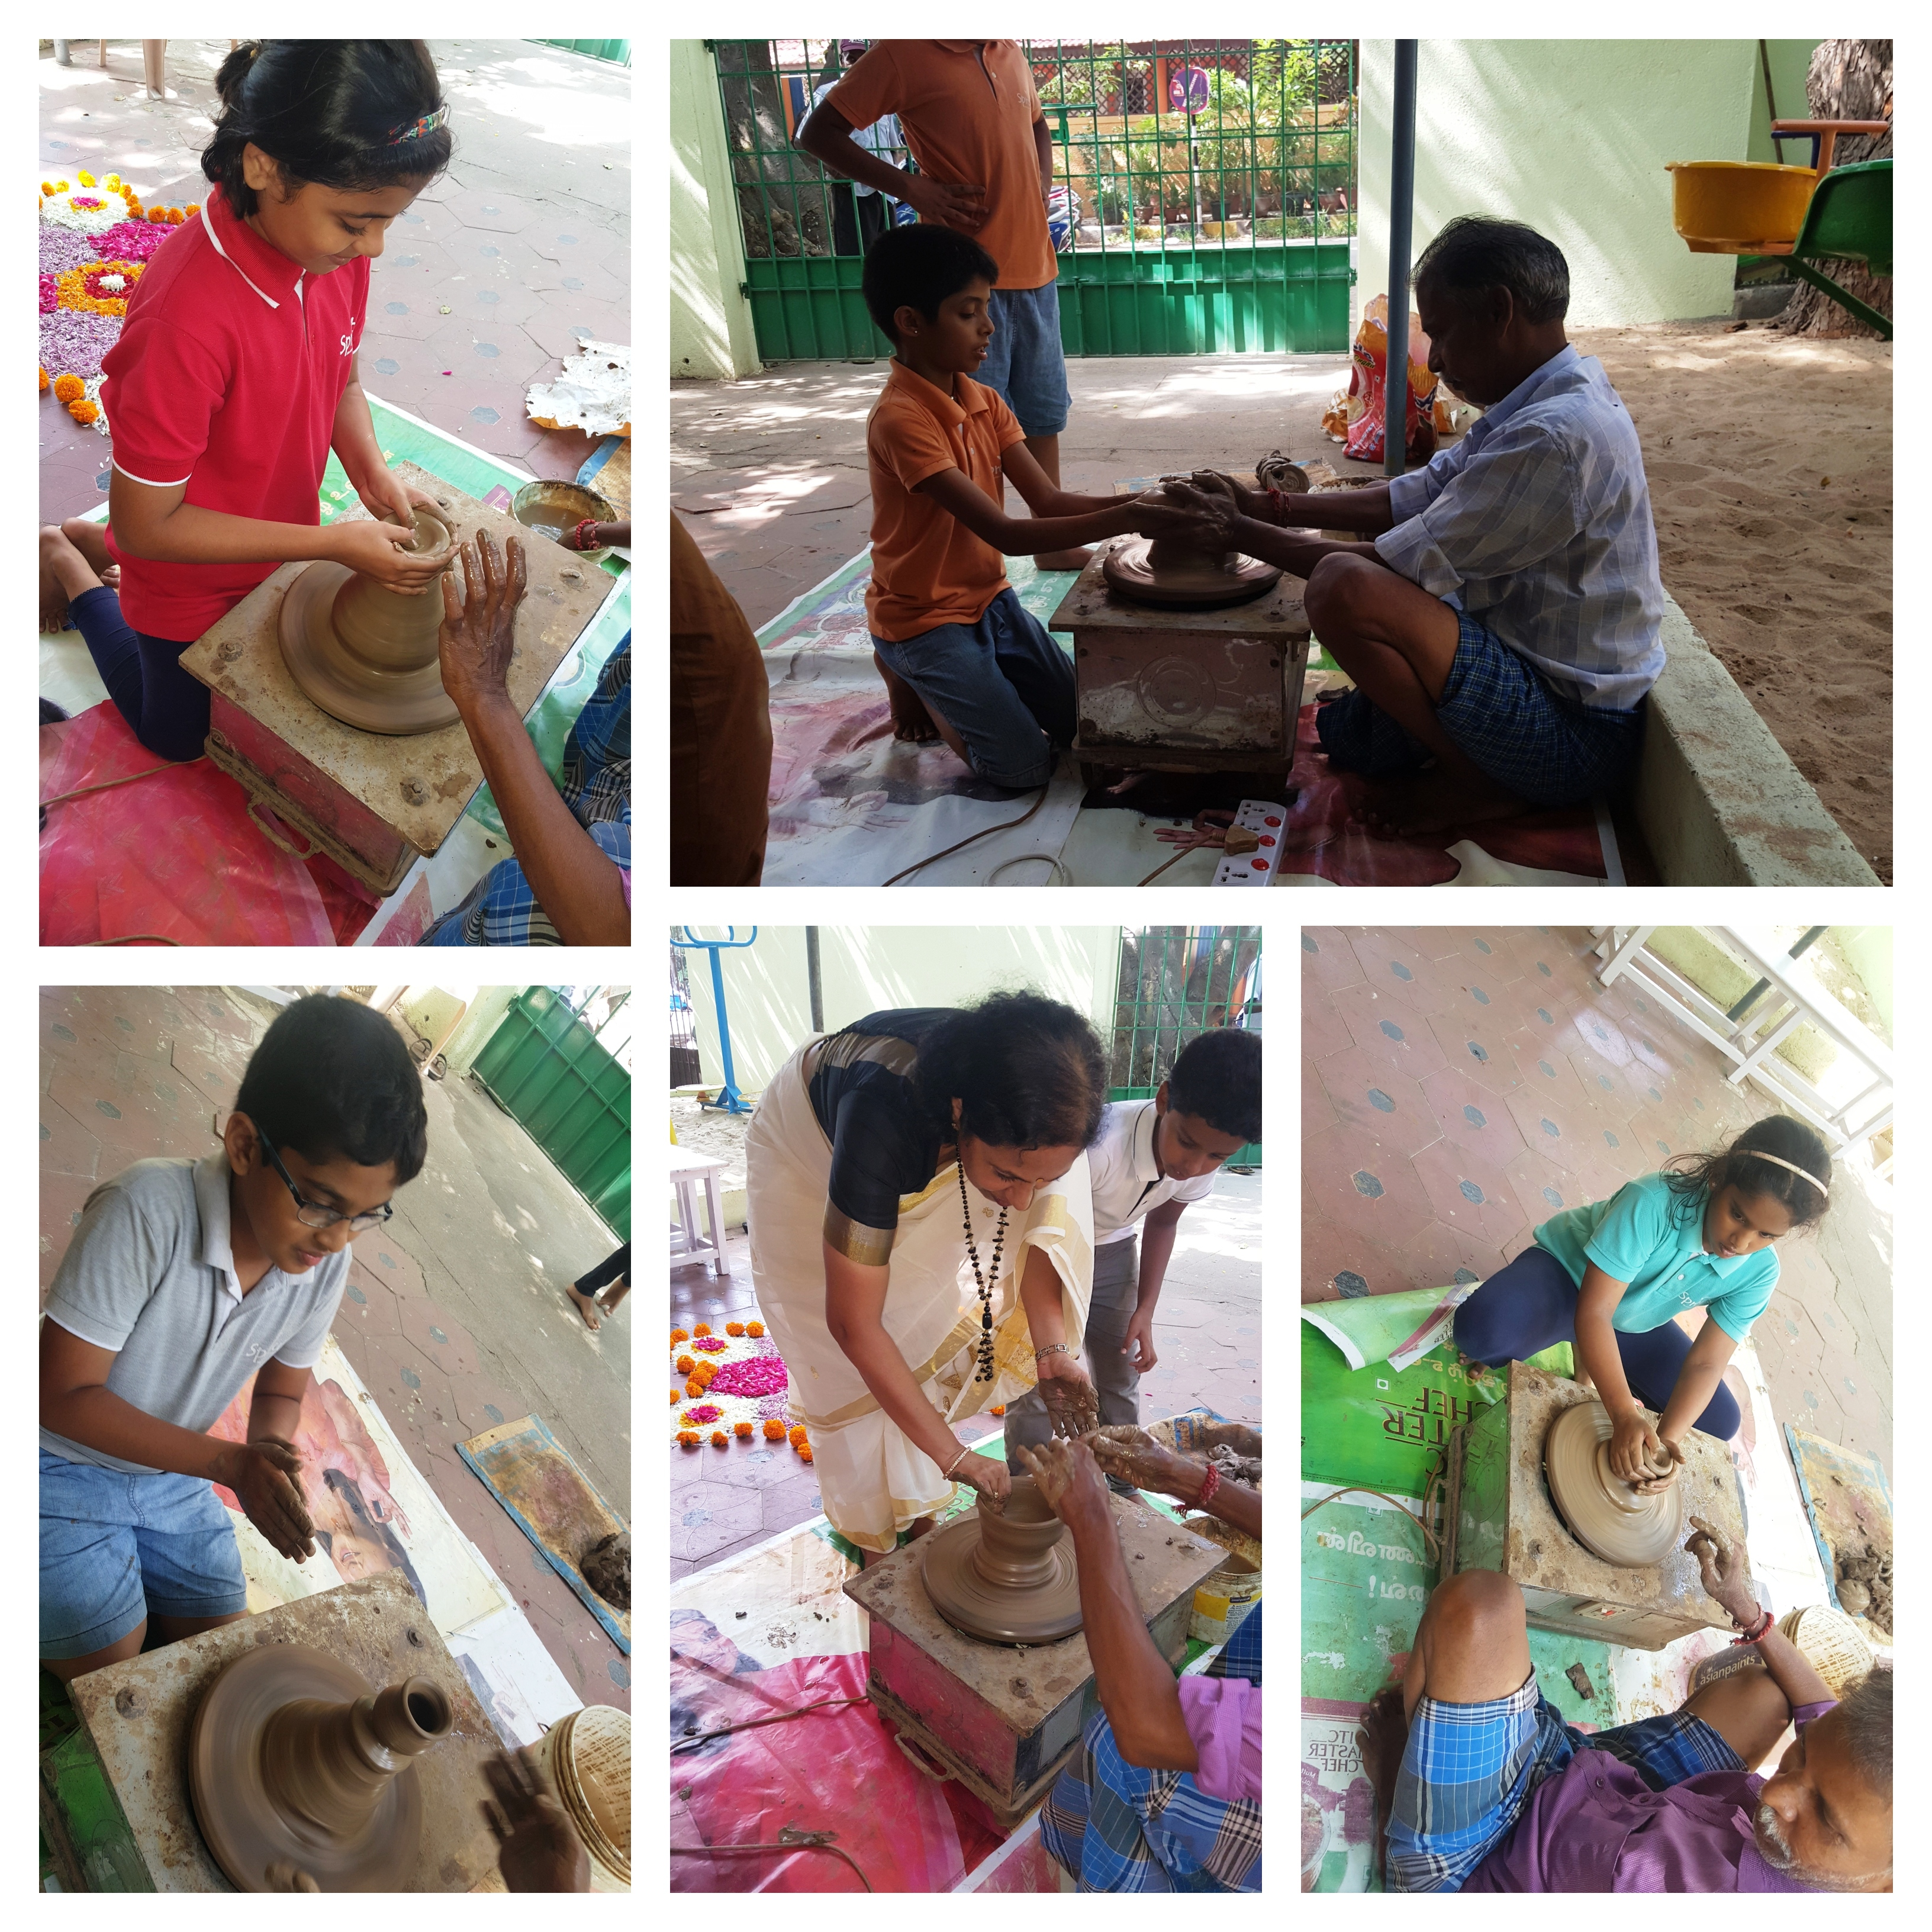 Trying their hand at Pottery